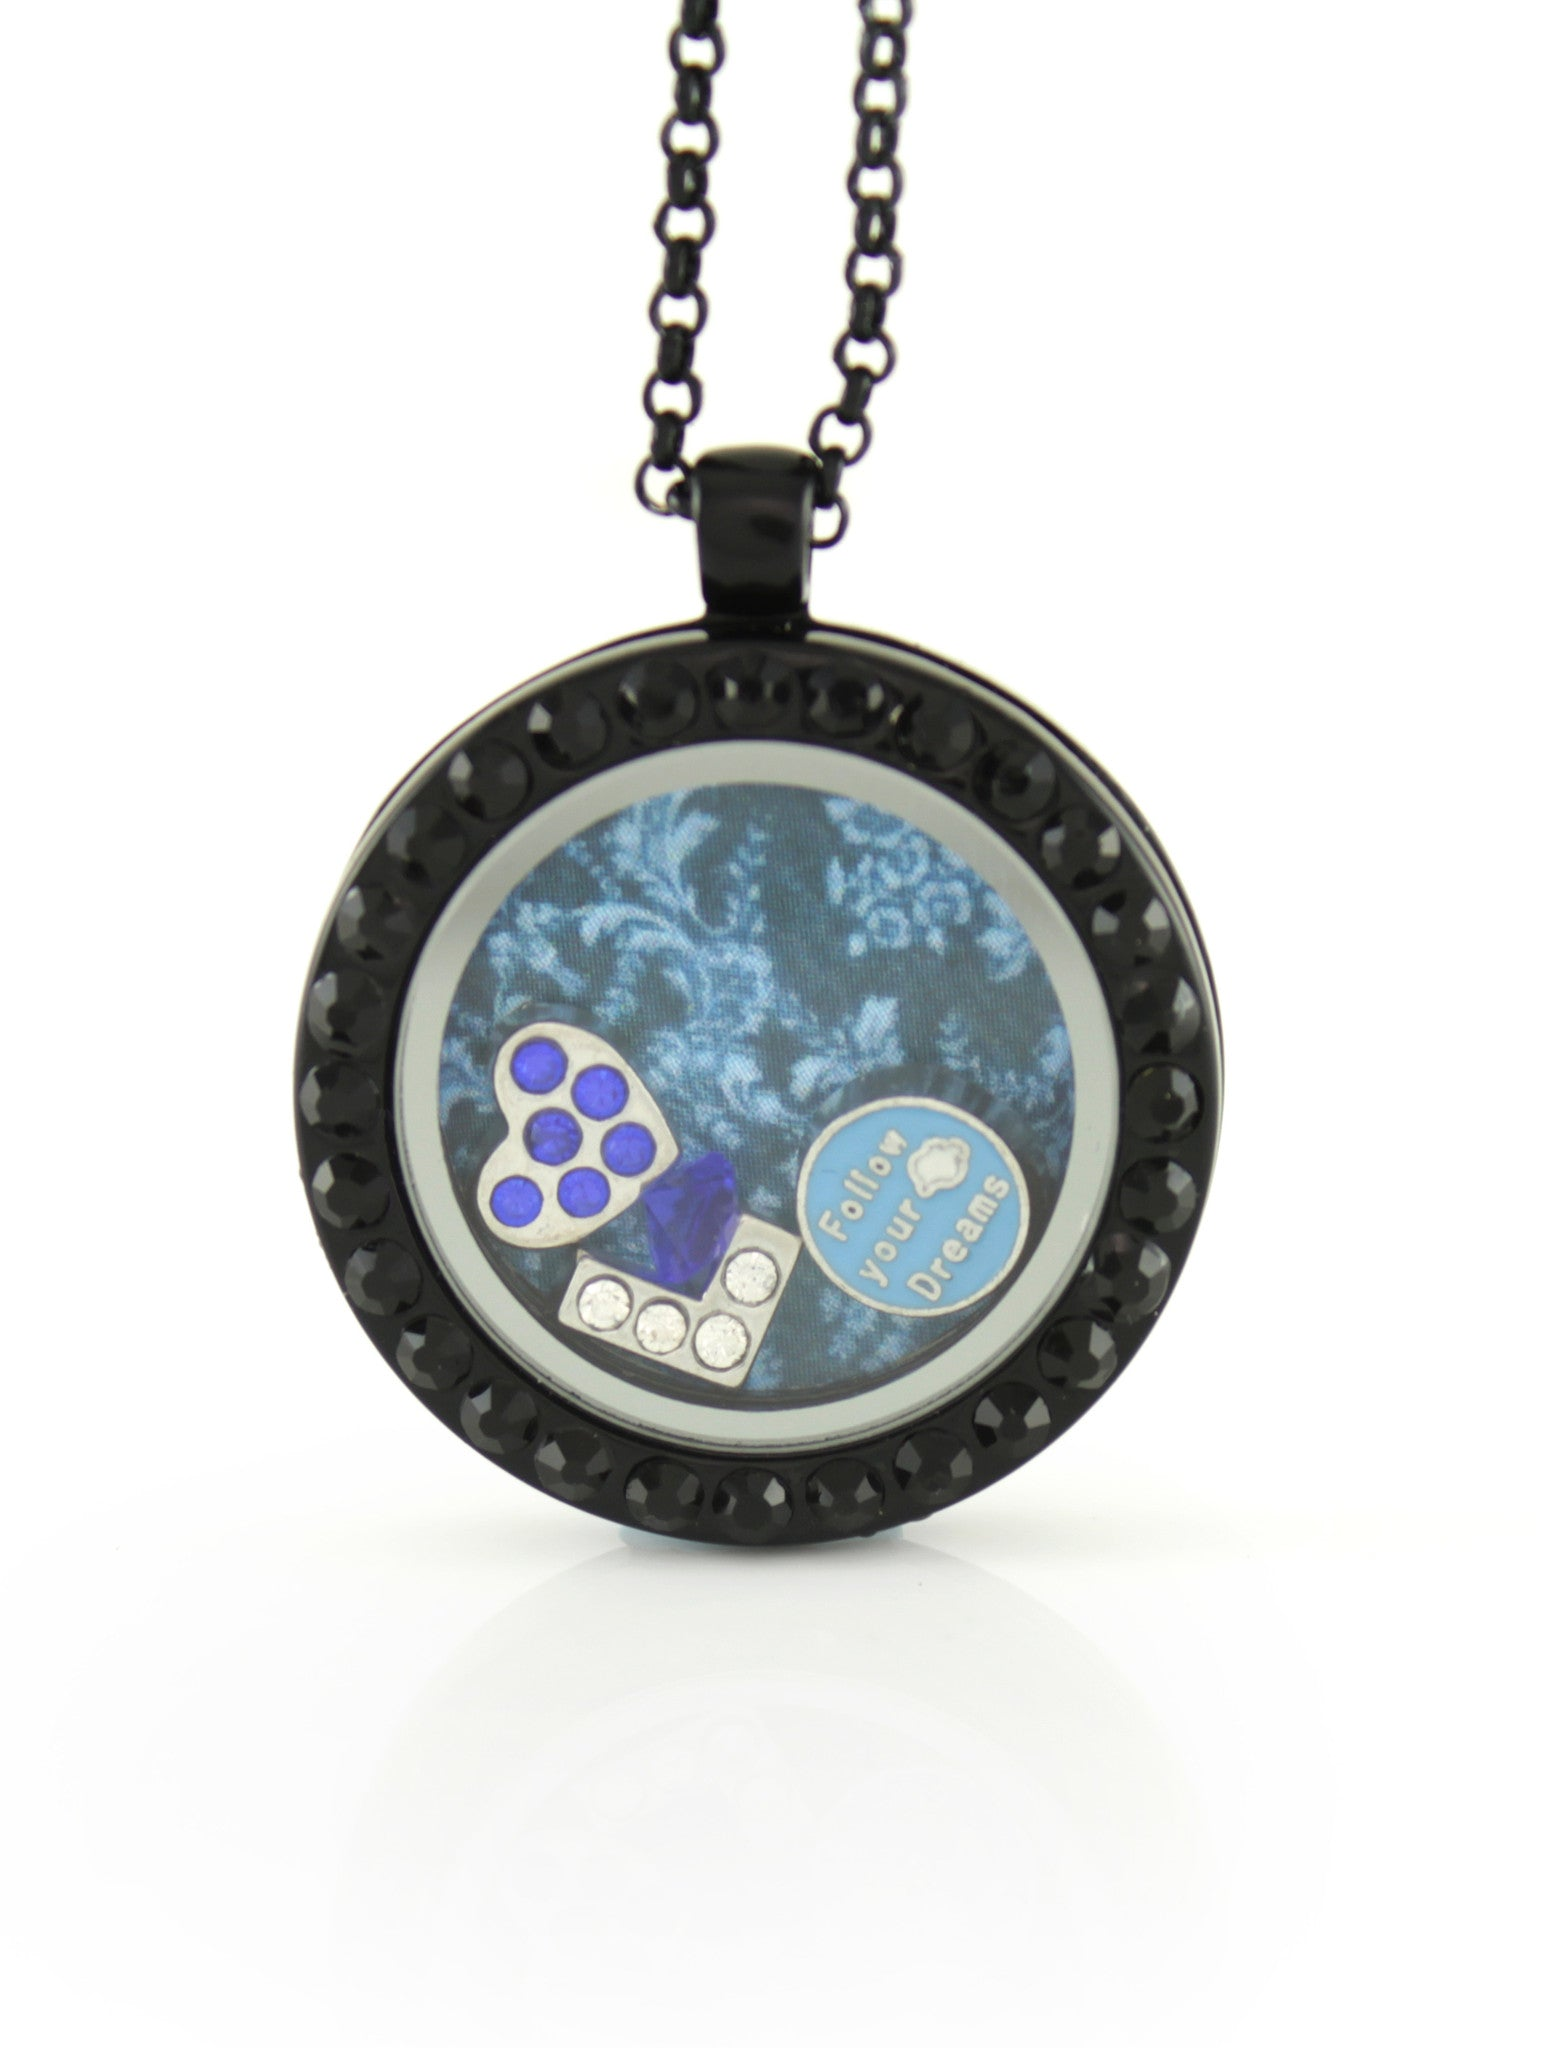 Floating Locket Necklace with 6 Mini Charms & Matching Chain (Gunmetal with Black Stone)